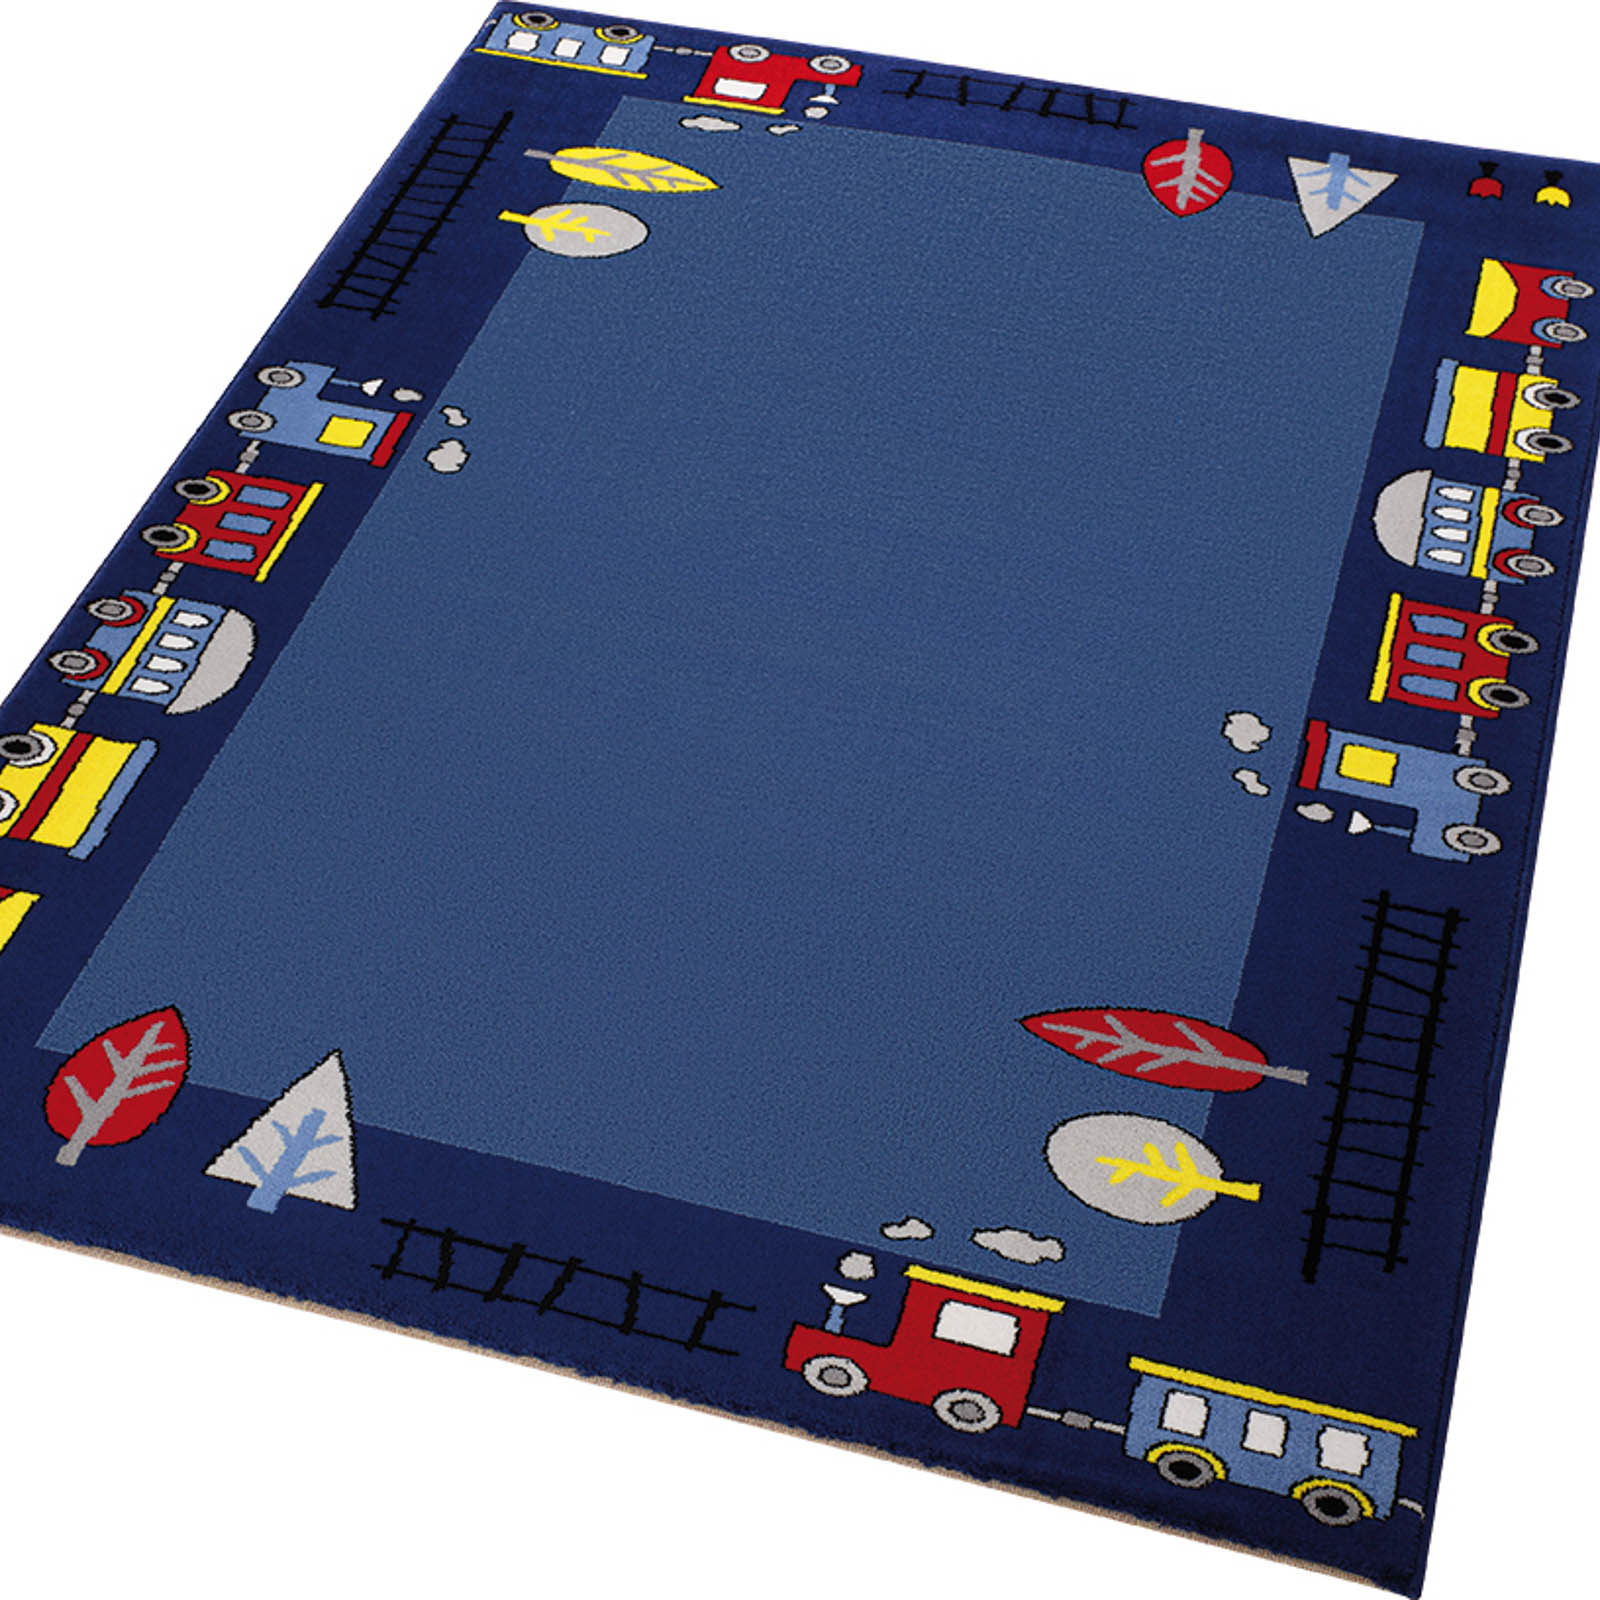 Weconhome Funny Train Rugs 0767 01 in Blue